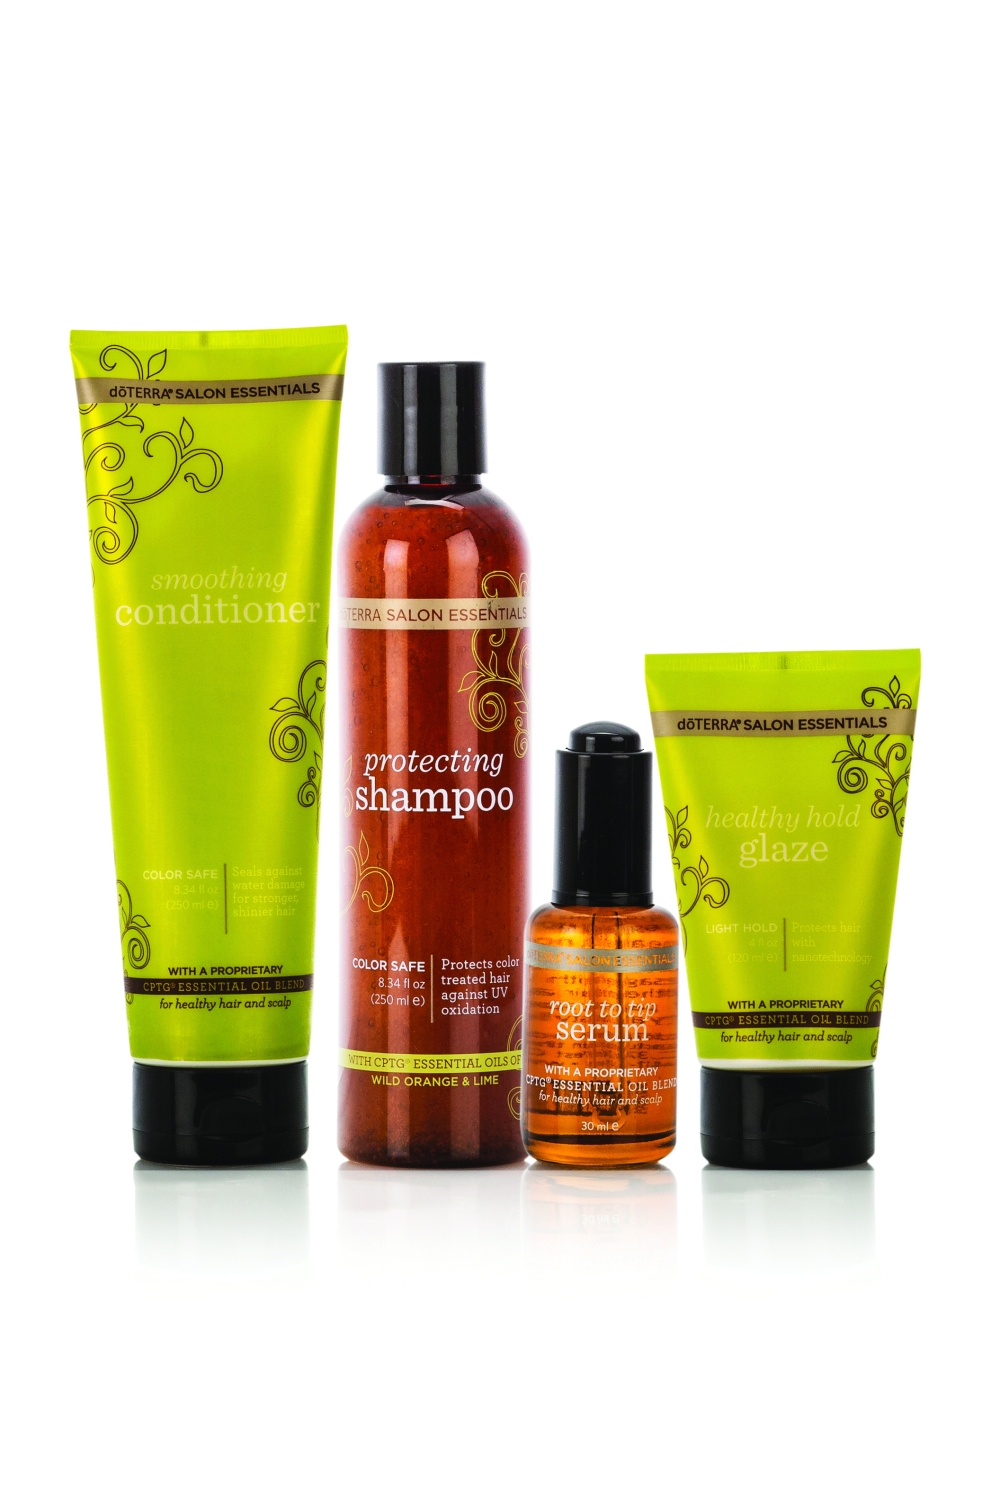 doterra-salon-essentials-hair-care-system.jpg